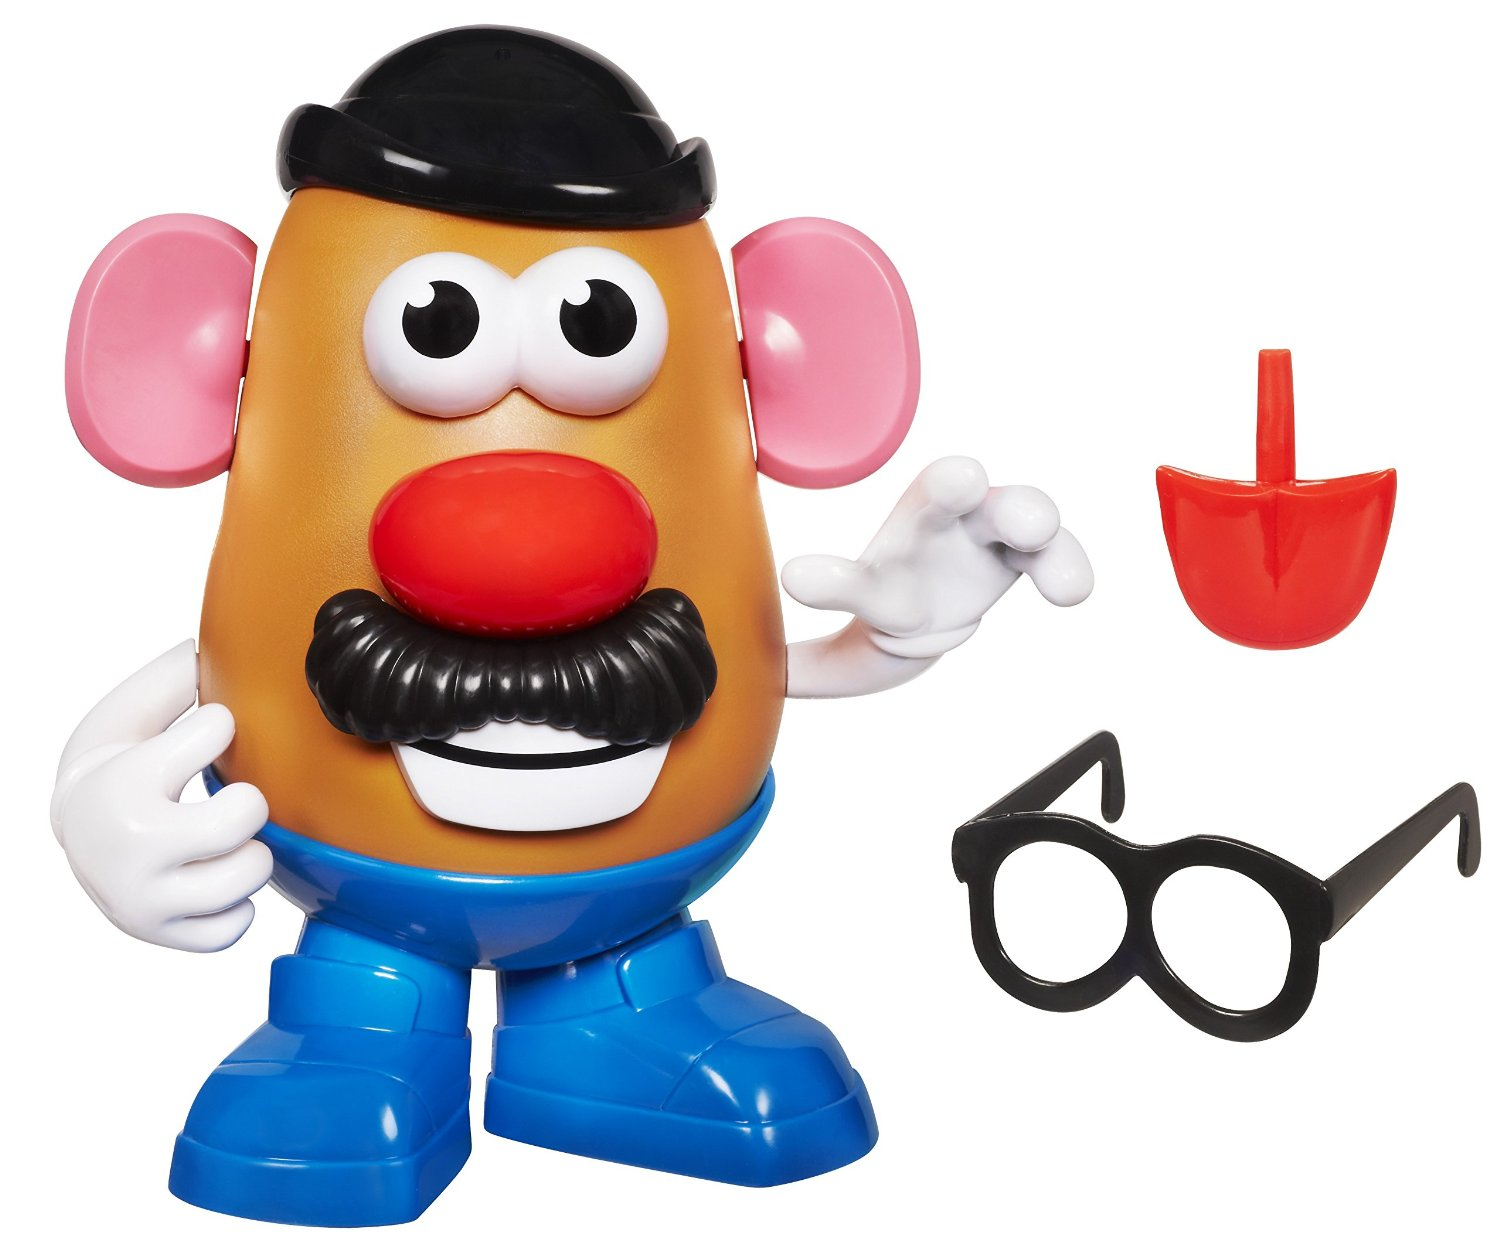 Mr. Potato-head.jpg